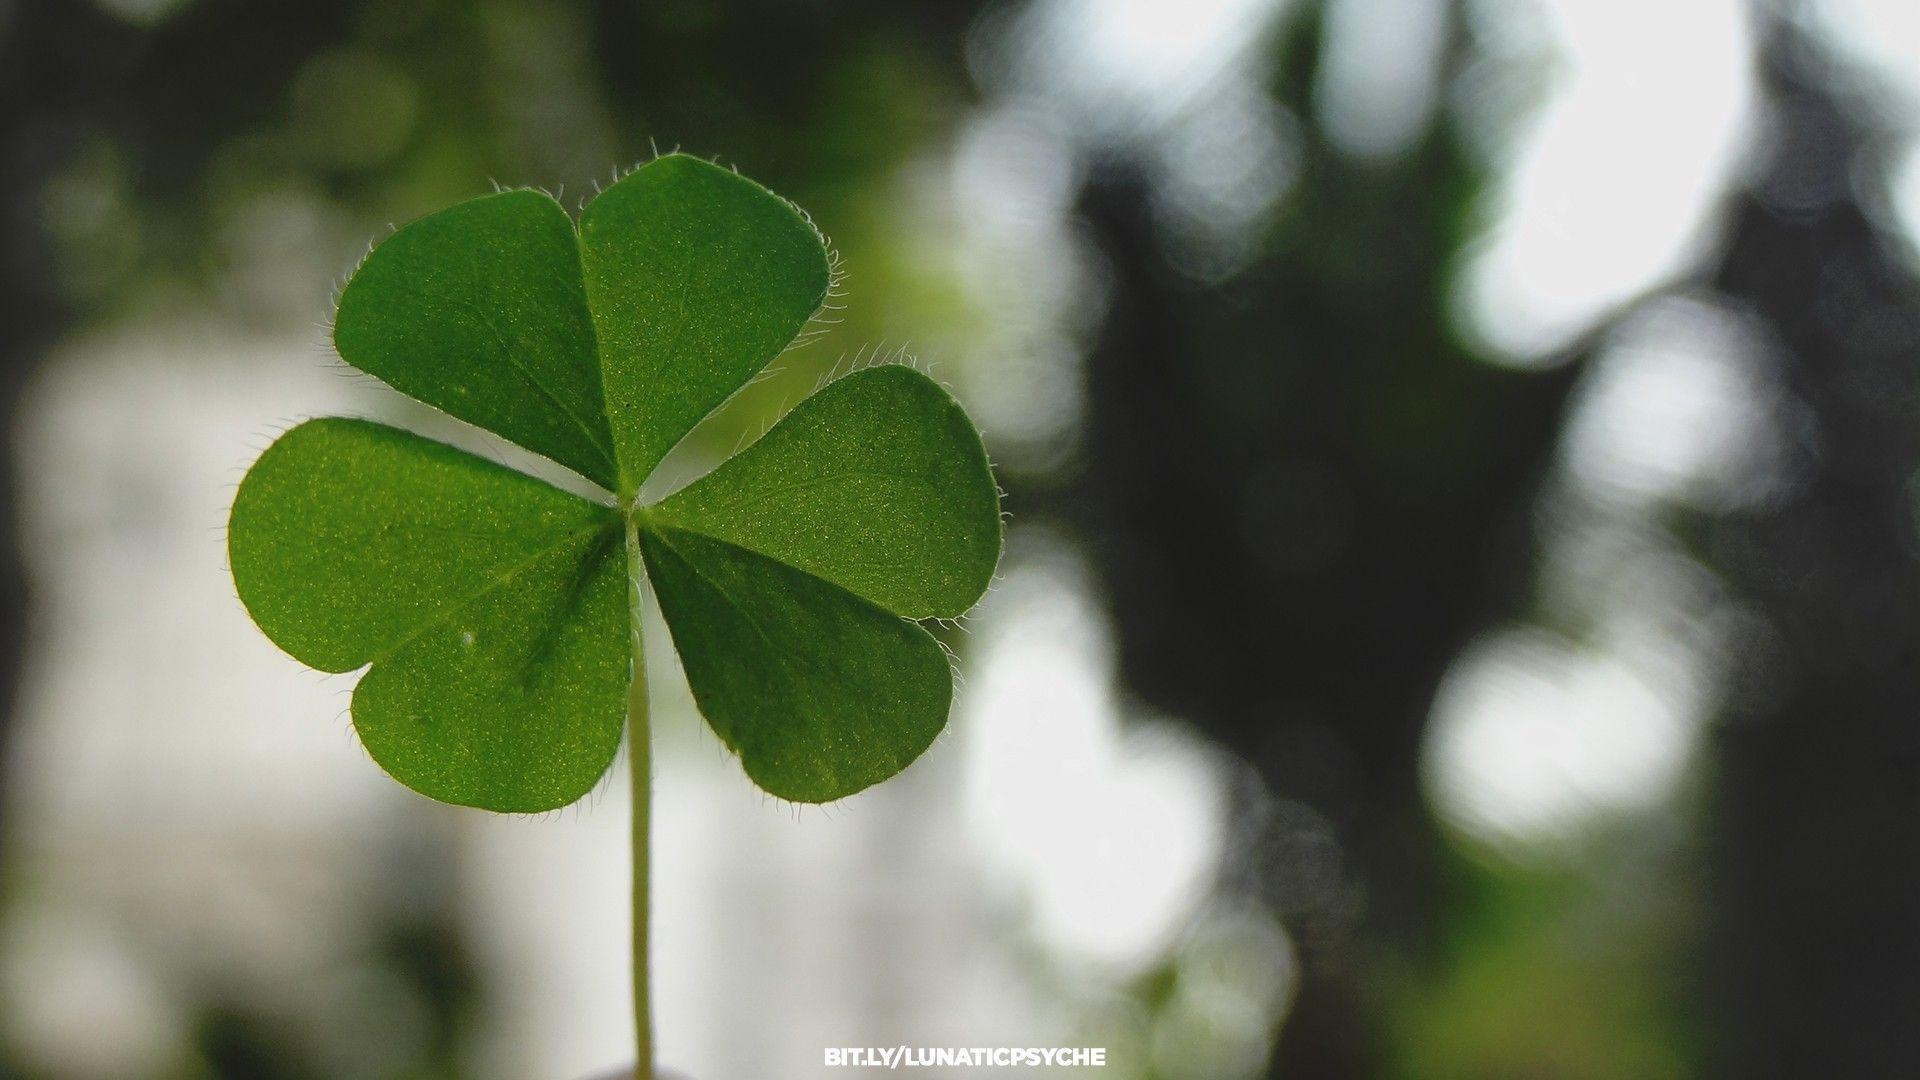 Four Leaf Clover Wallpapers 1920x1080